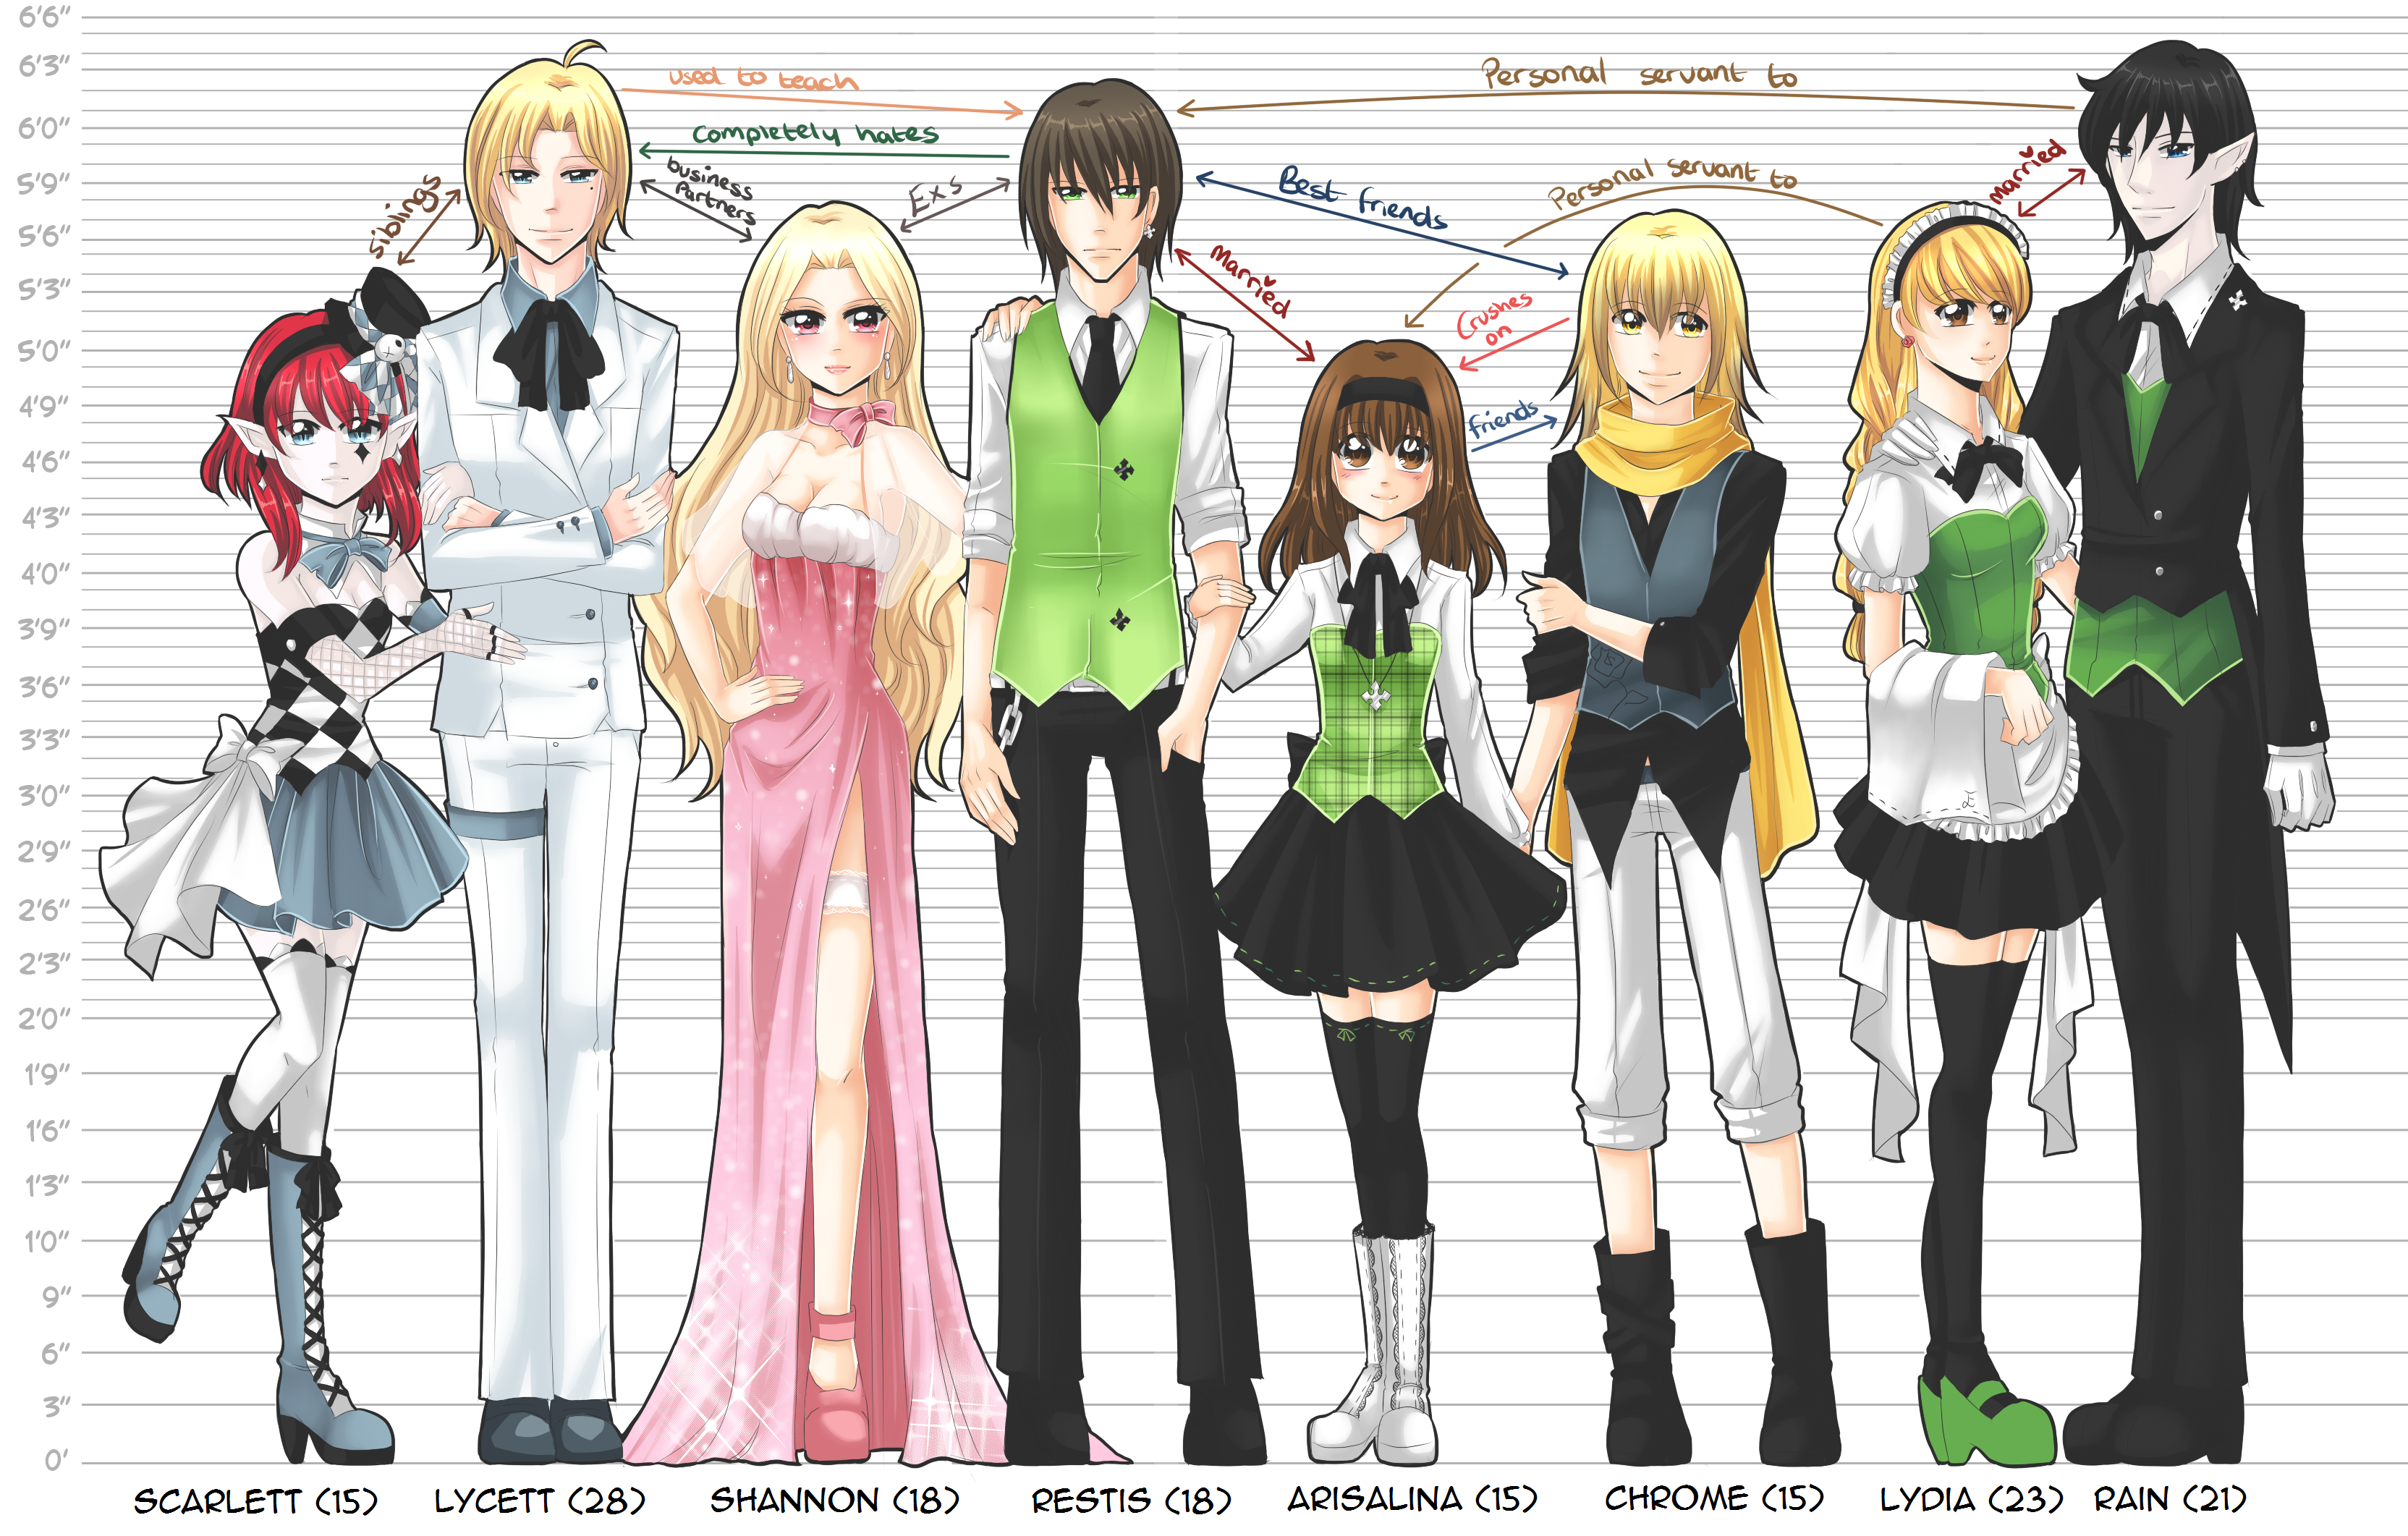 Anime Characters 175 Cm : Tbe character height and relationships by chikukko on